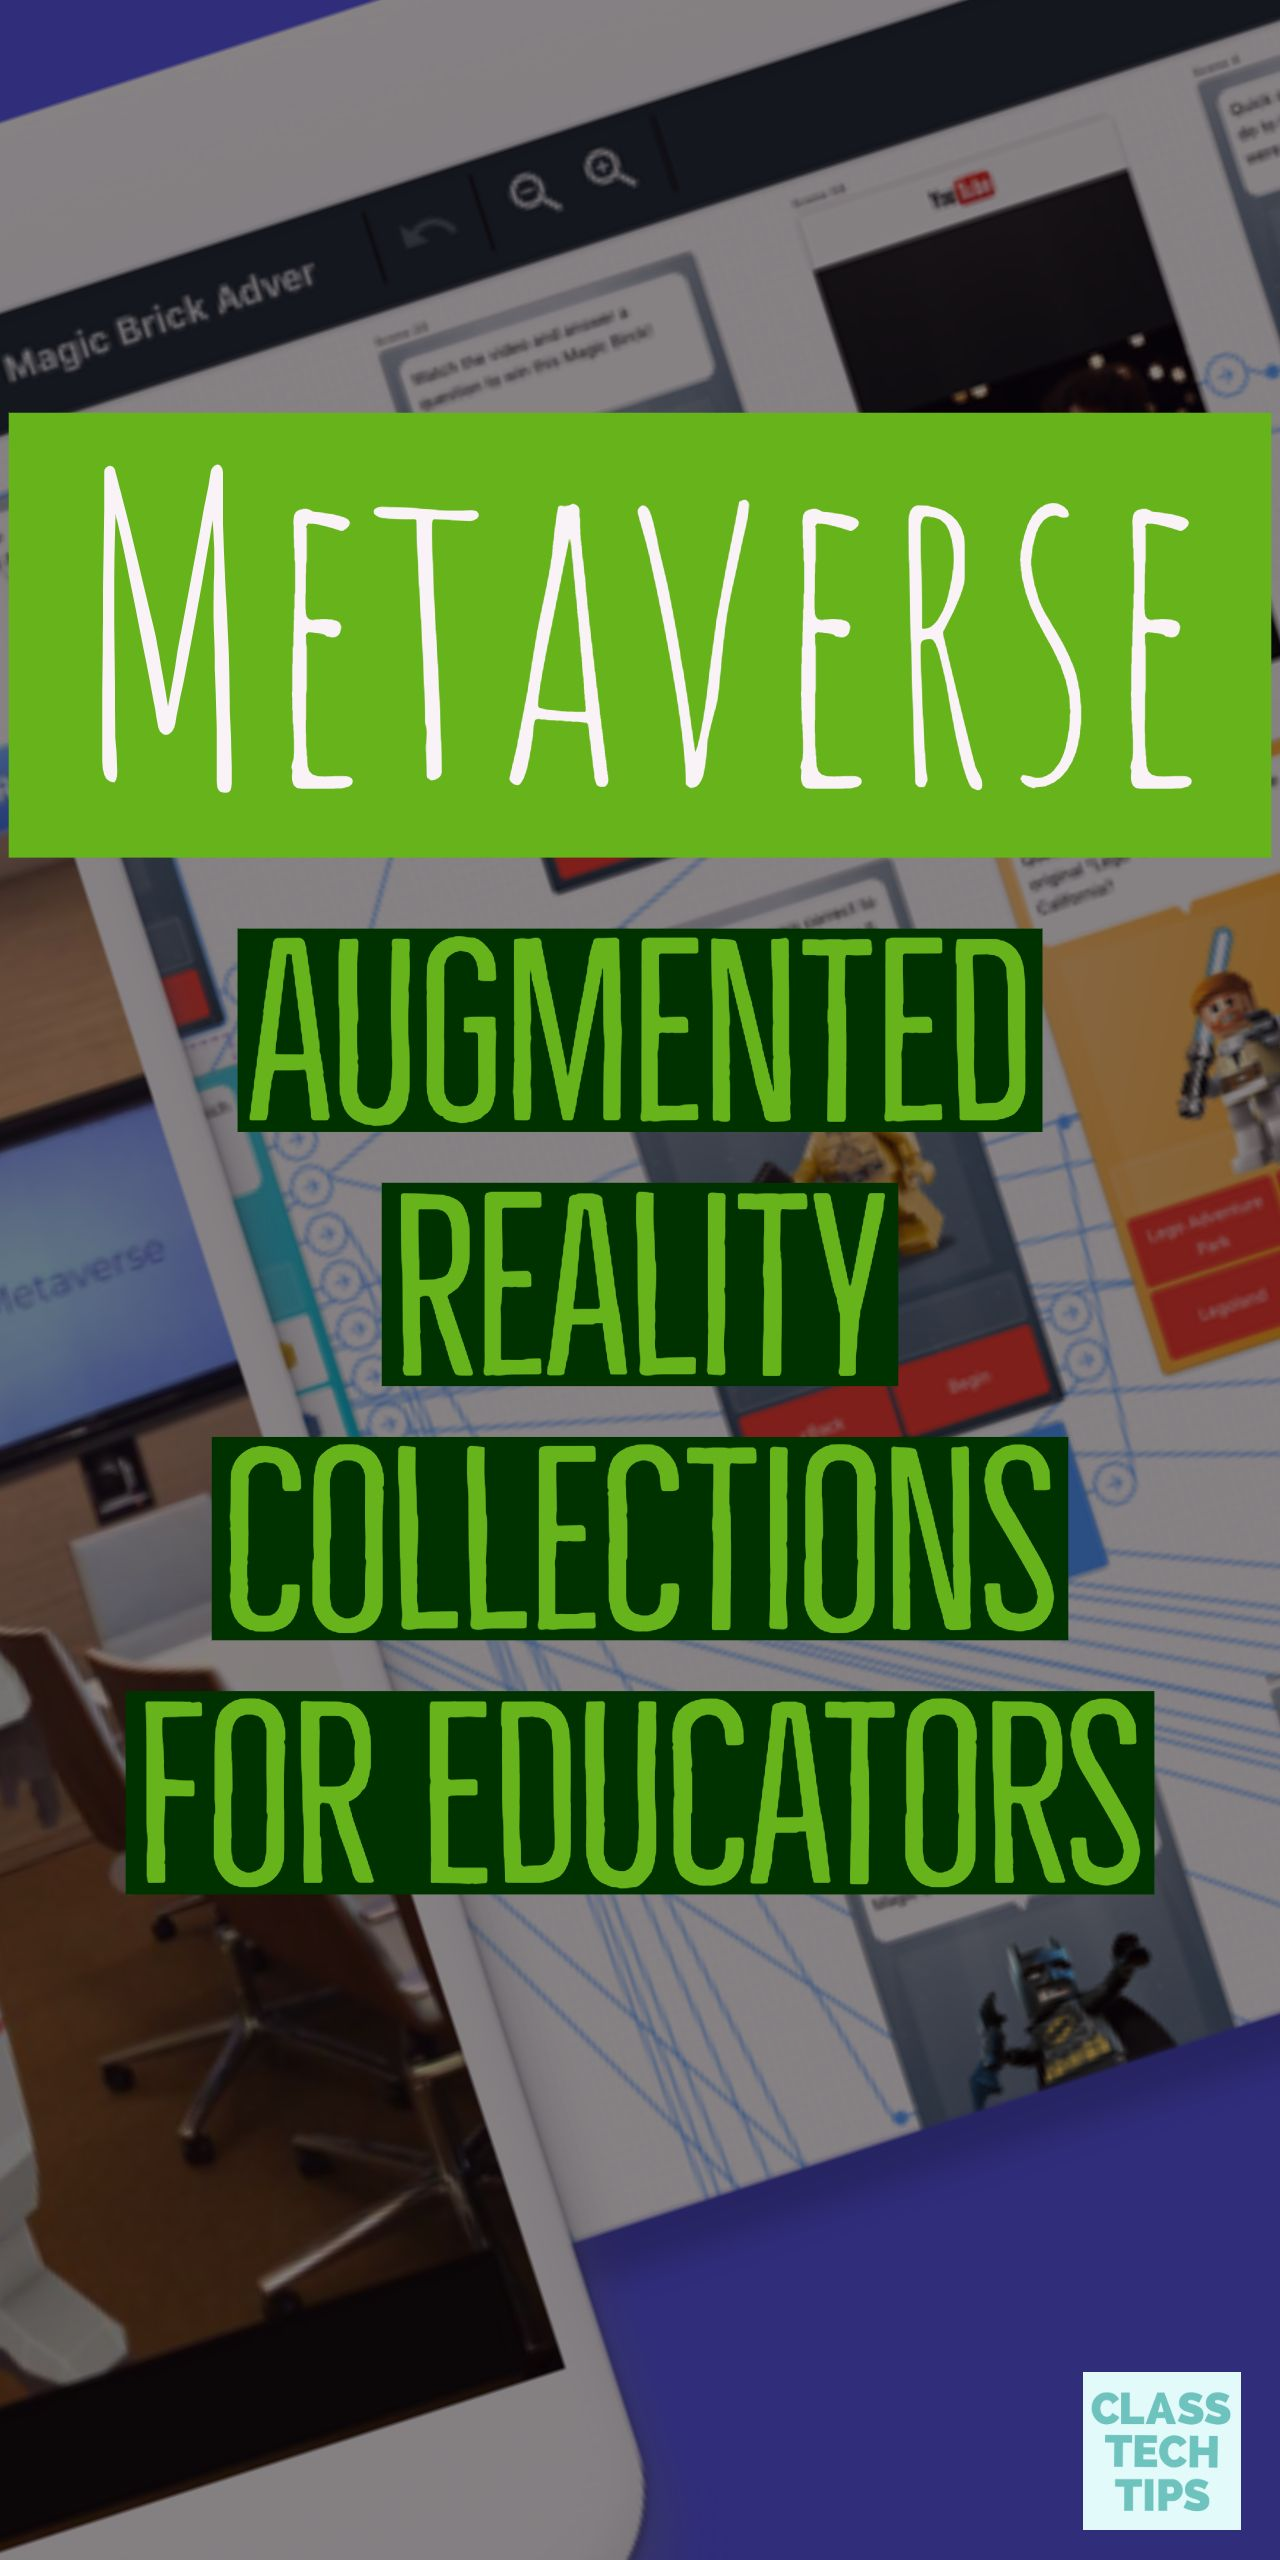 Metaverse Augmented Reality Collections for Educators